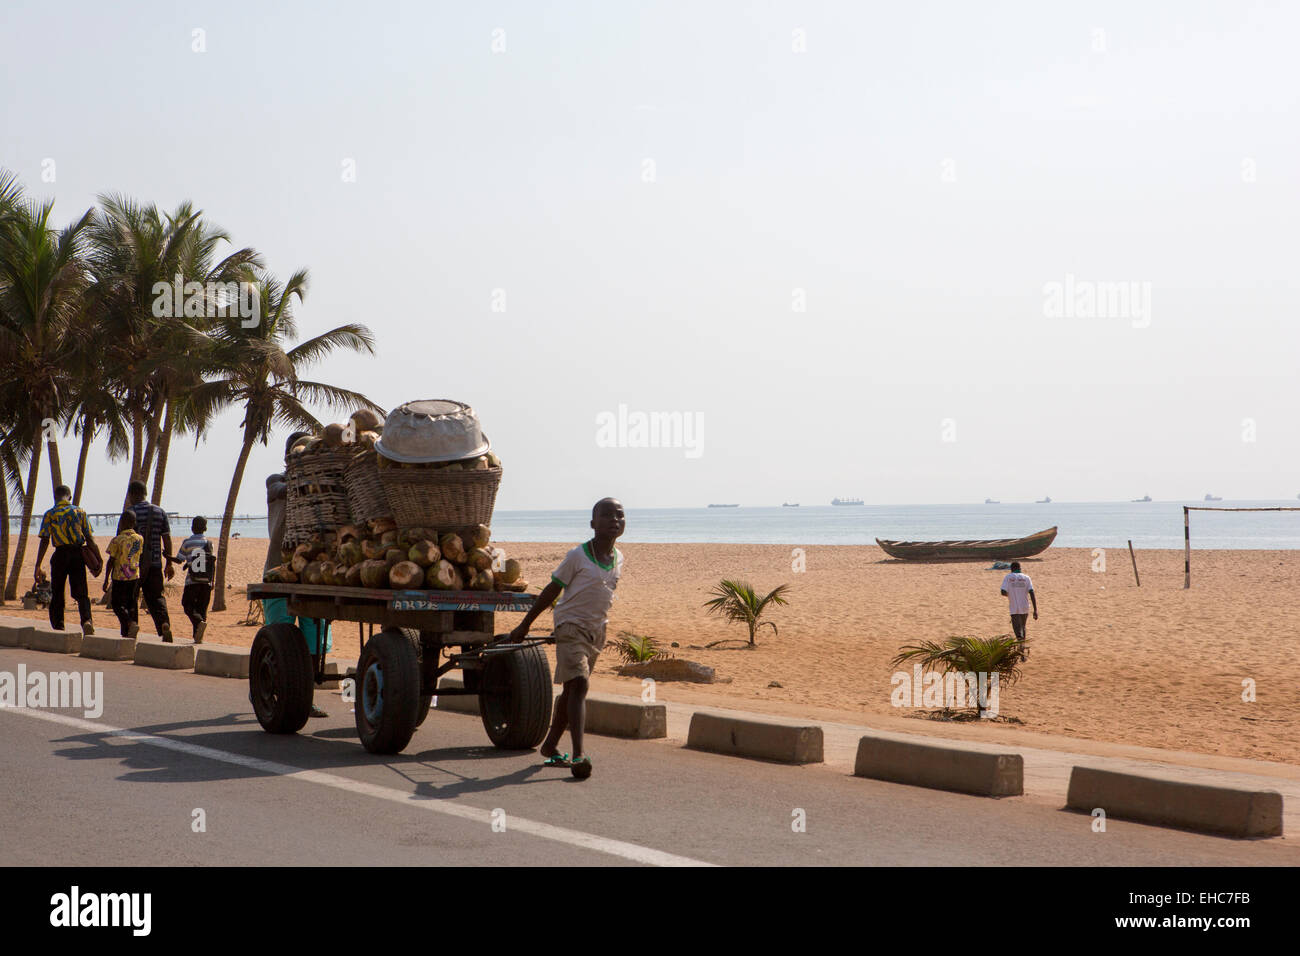 LOME, TOGO, 9th December 2012; A boy pulls a cart of coconuts along the beachfront road. - Stock Image